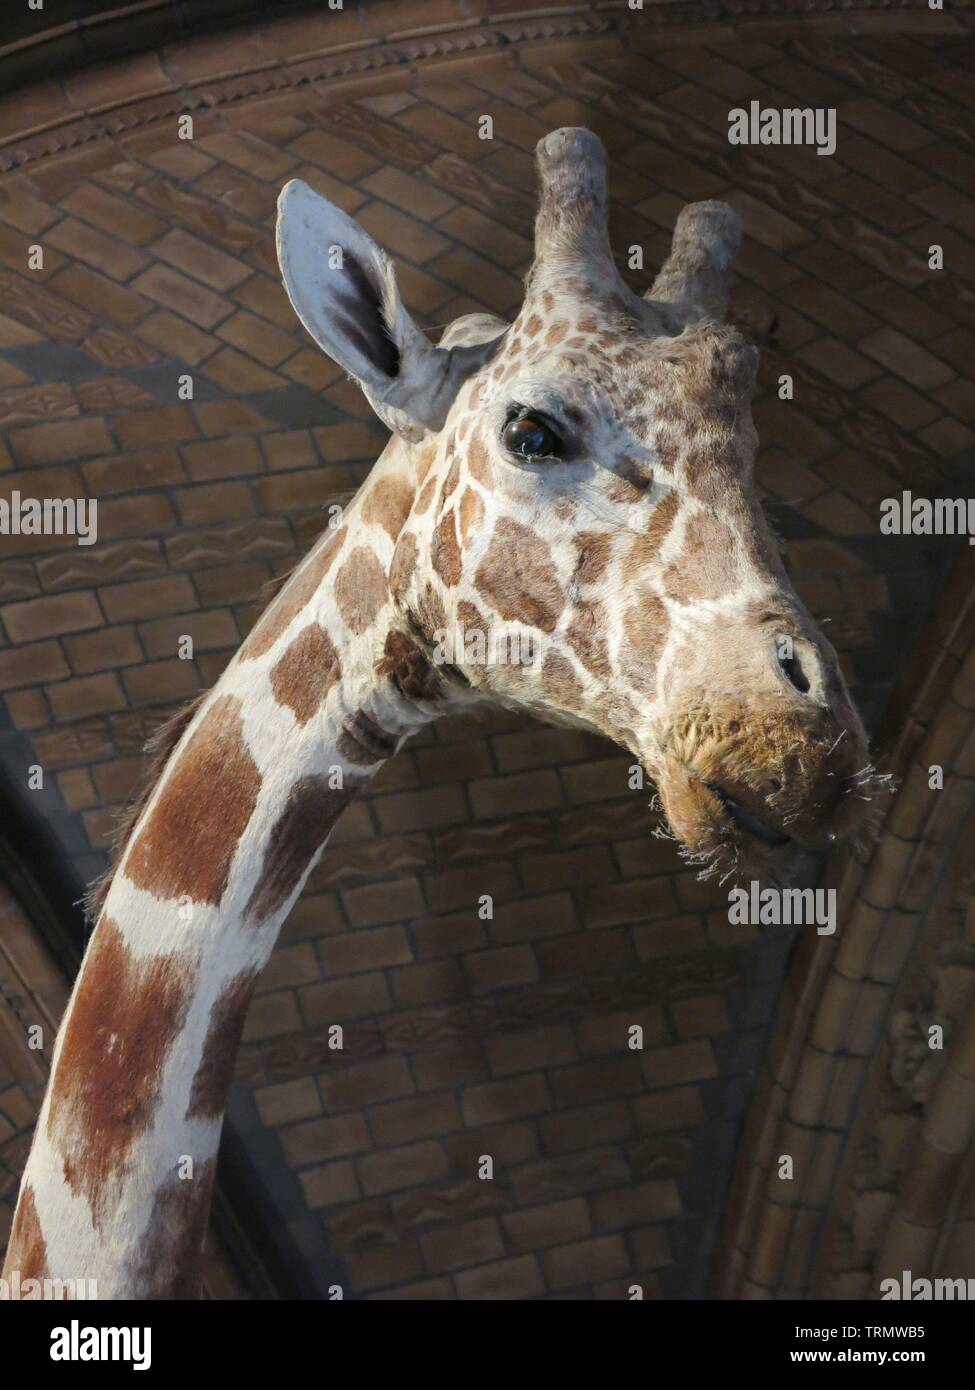 Close-up of the head and neck of a tall giraffe, one of the stuffed creatures preserved at London's Natural History Museum - Stock Image